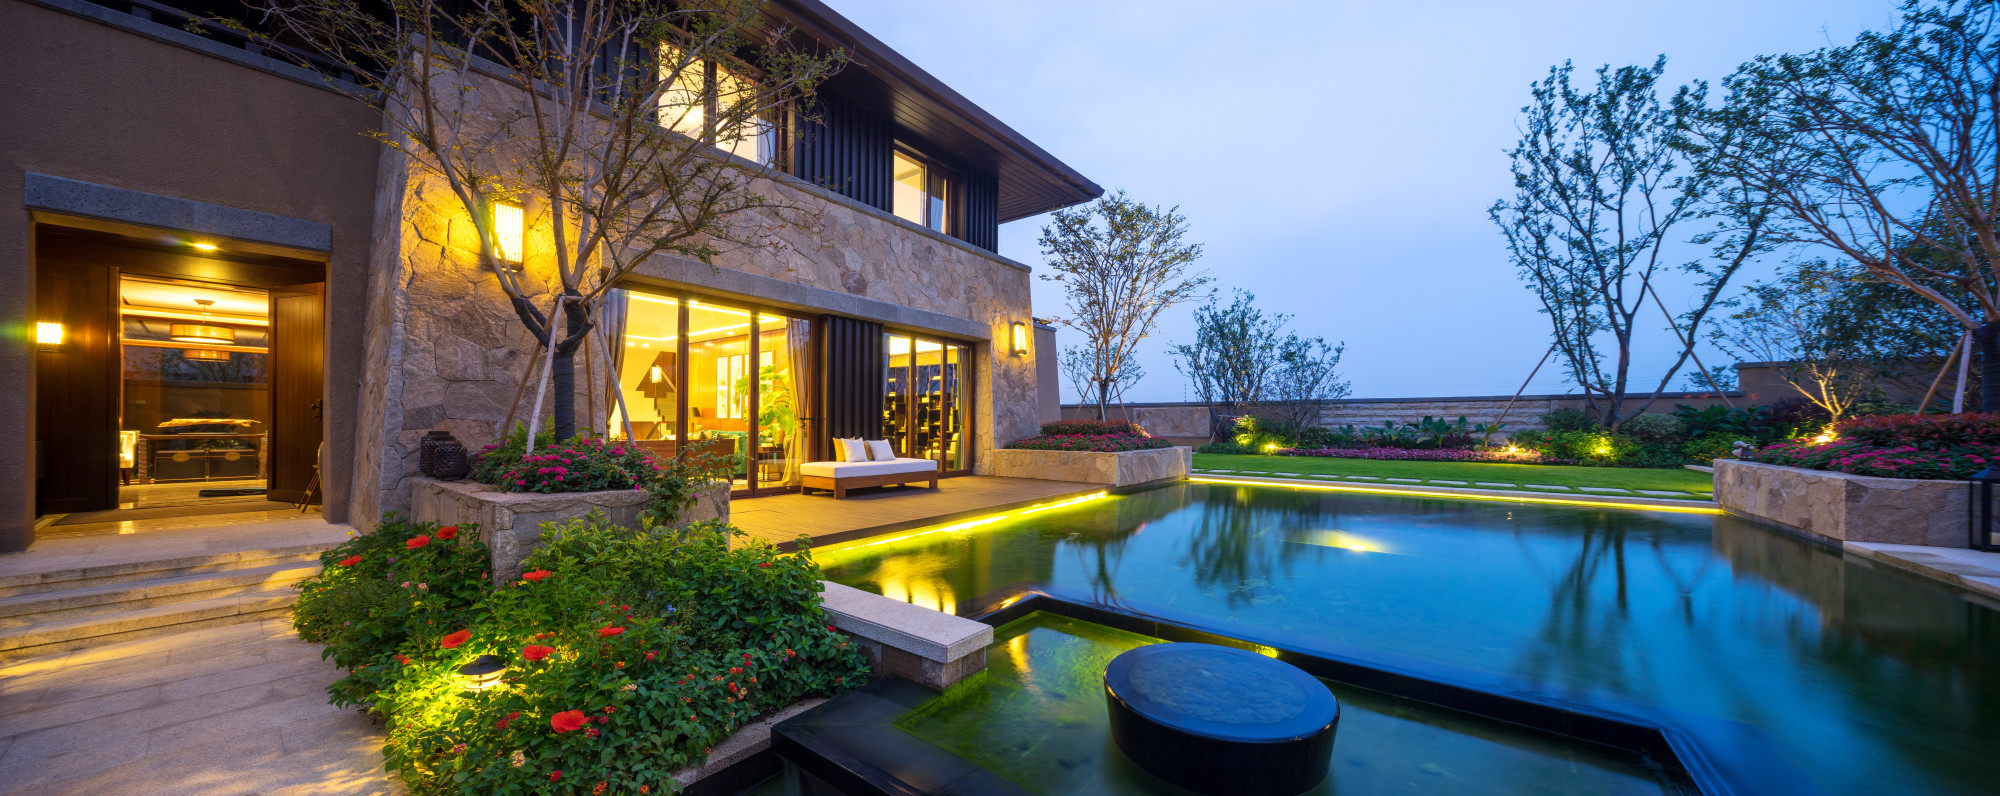 5 Luxury Amenities To Look For in Your Next Home